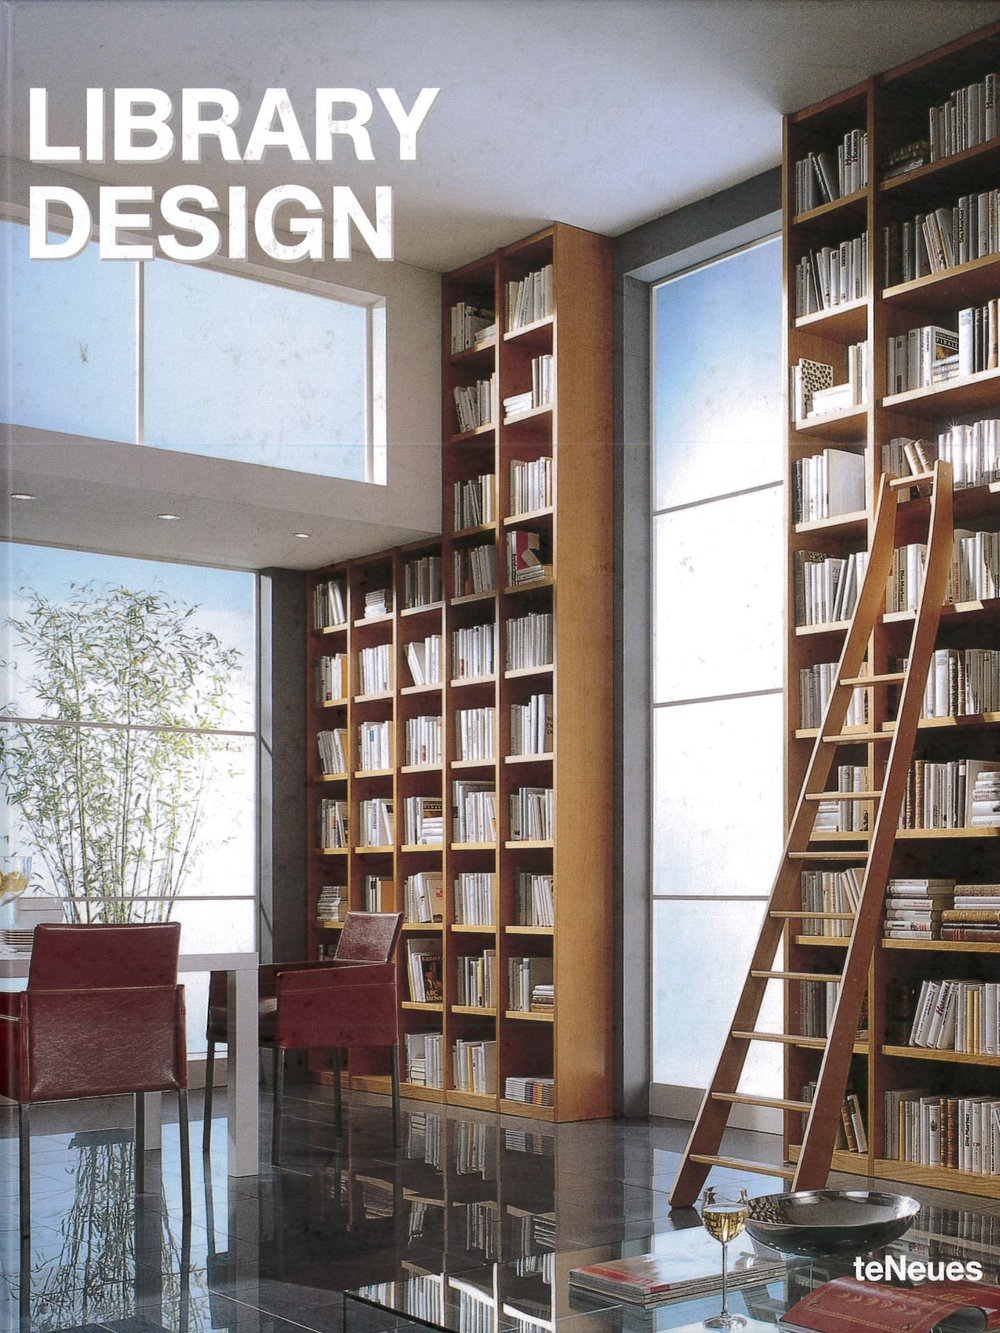 Library Design Craven & Massey.jpg